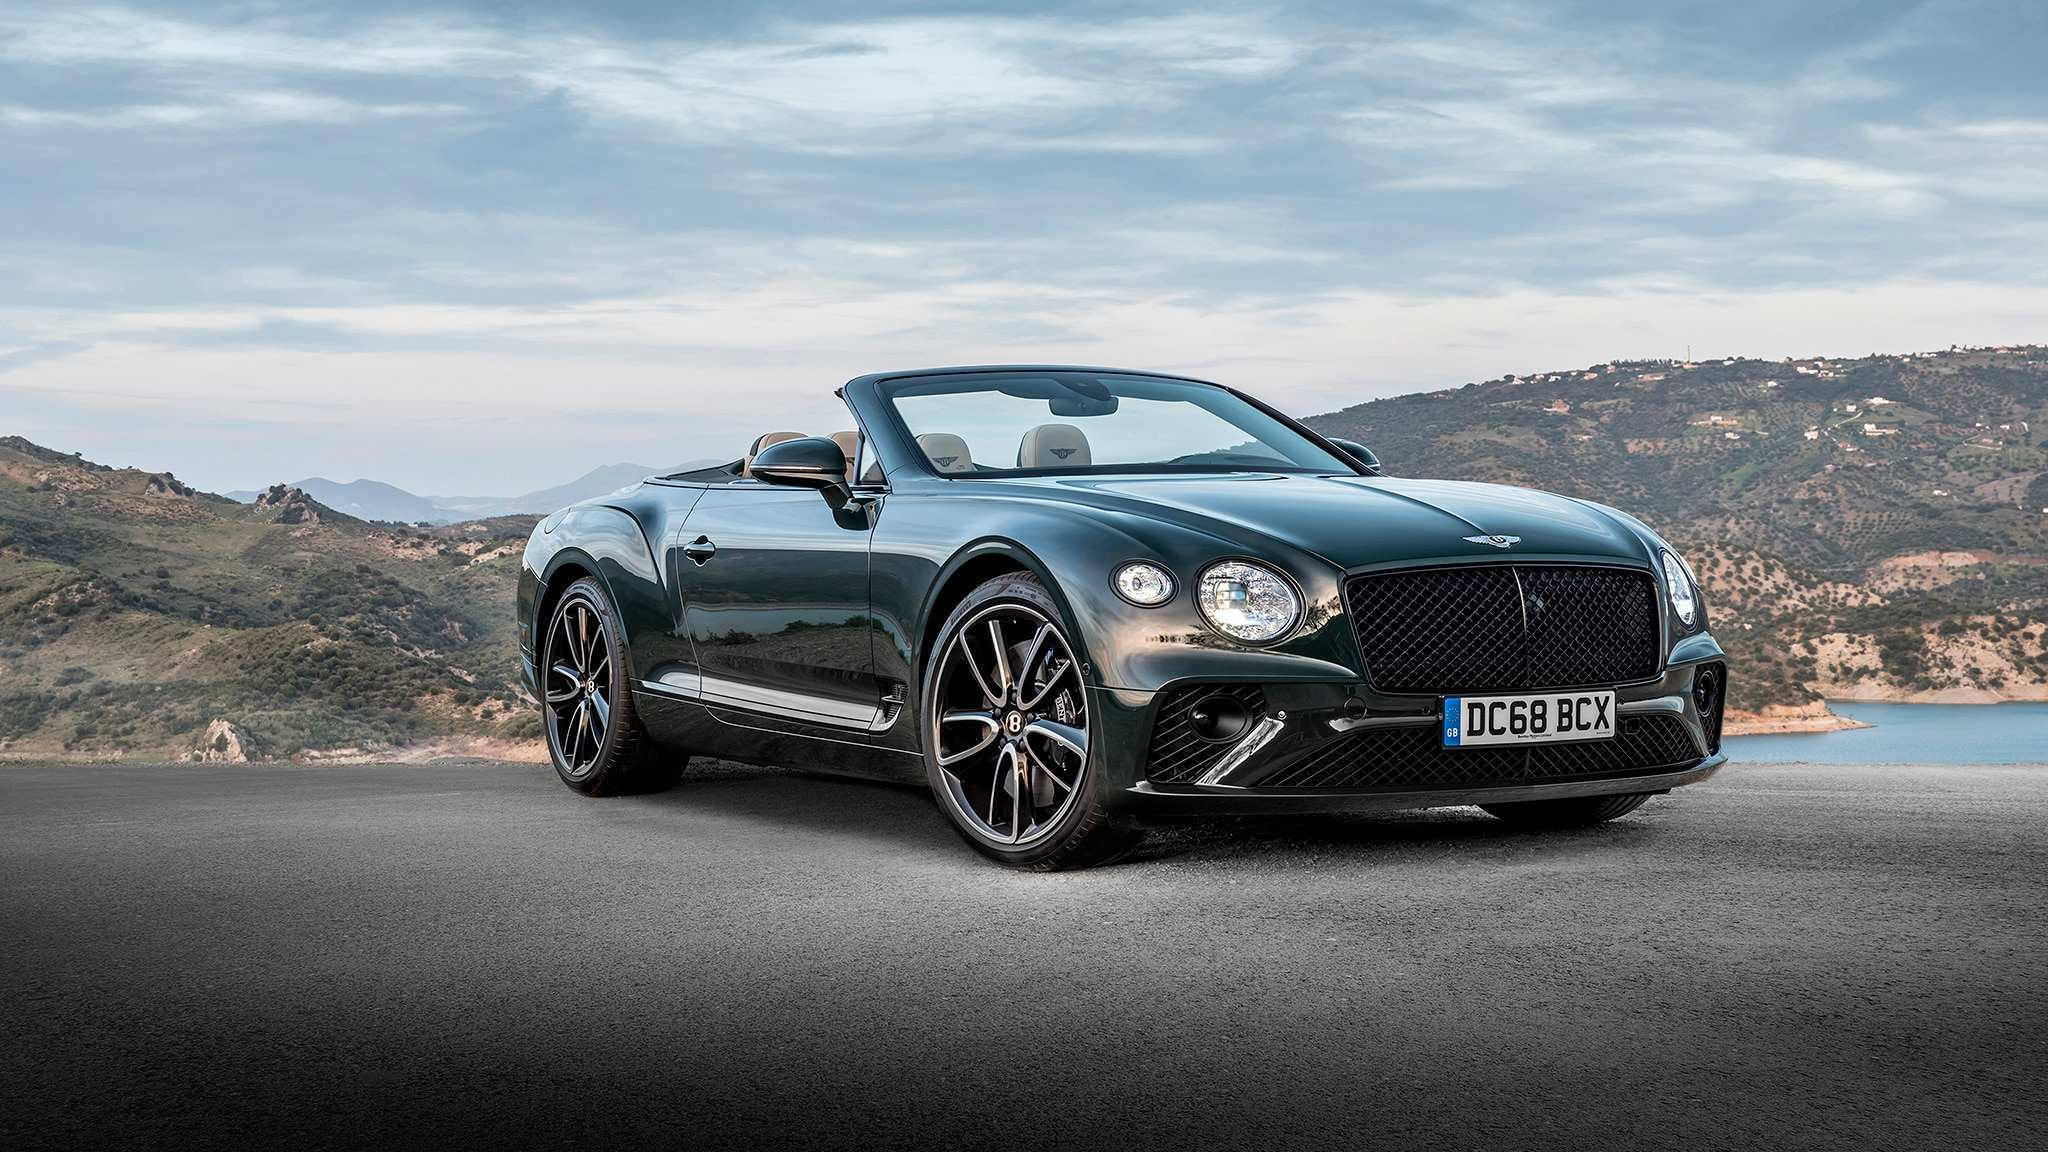 47 The Best 2020 Bentley Gtc Specs